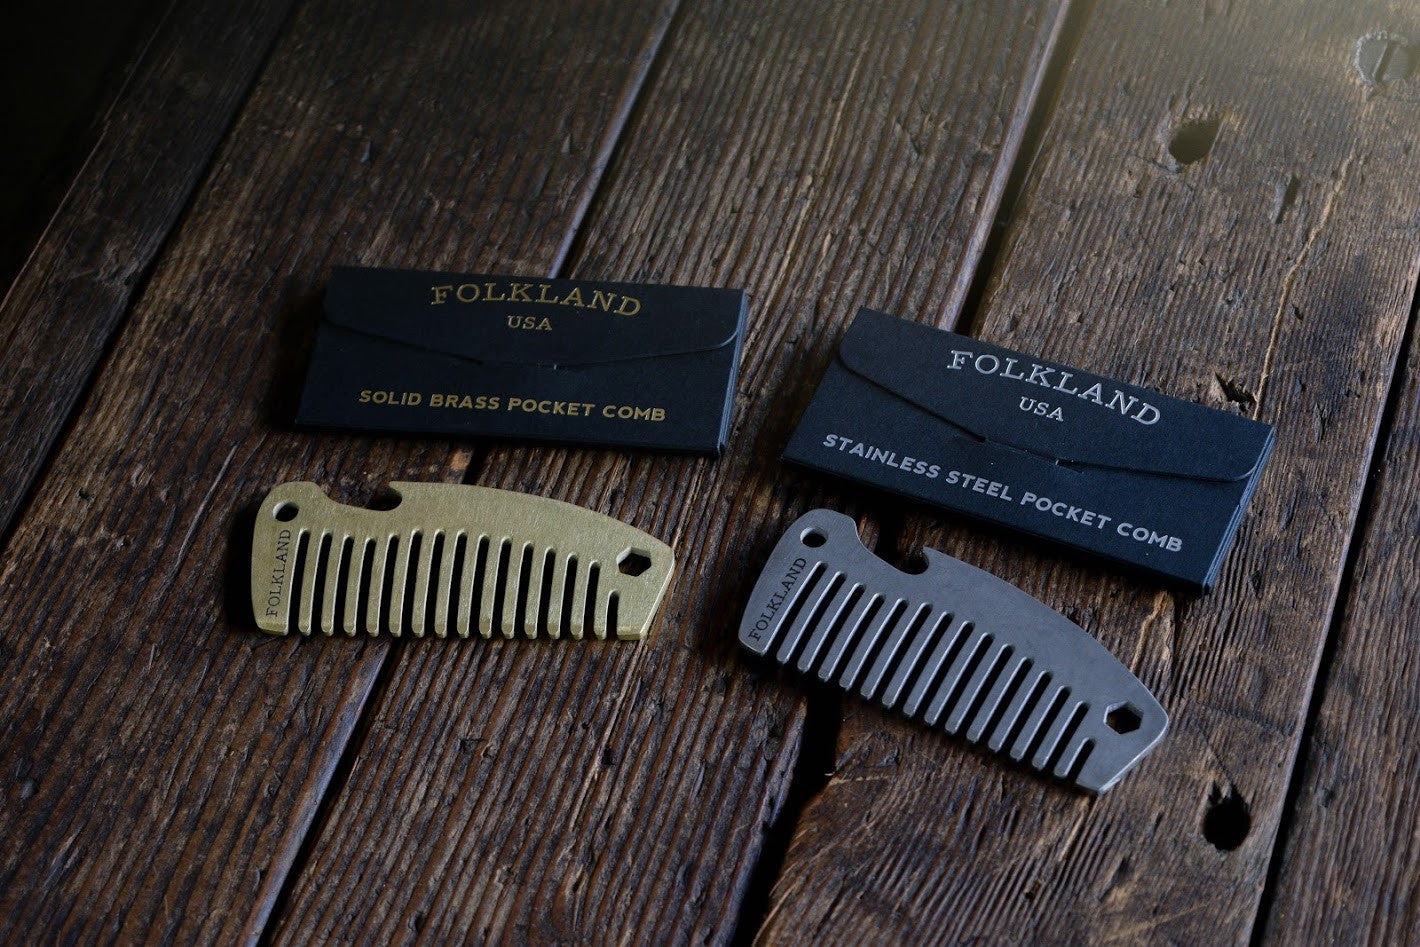 Folkland Pocket Comb Launch